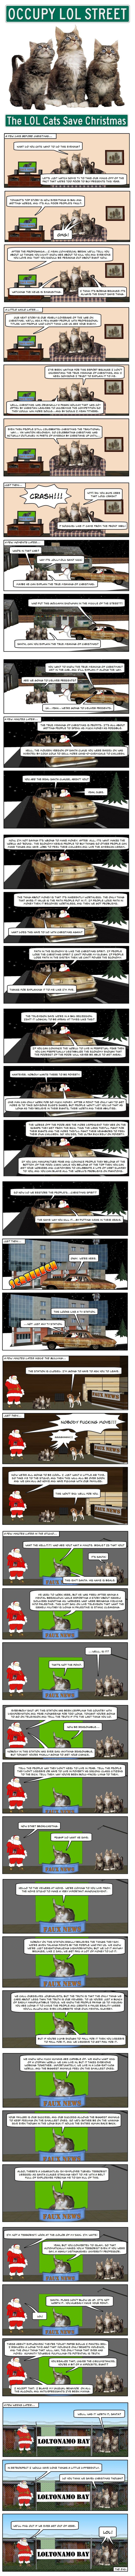 (Comic) Occupy LOL Street: The LOL Cats Save Christmas